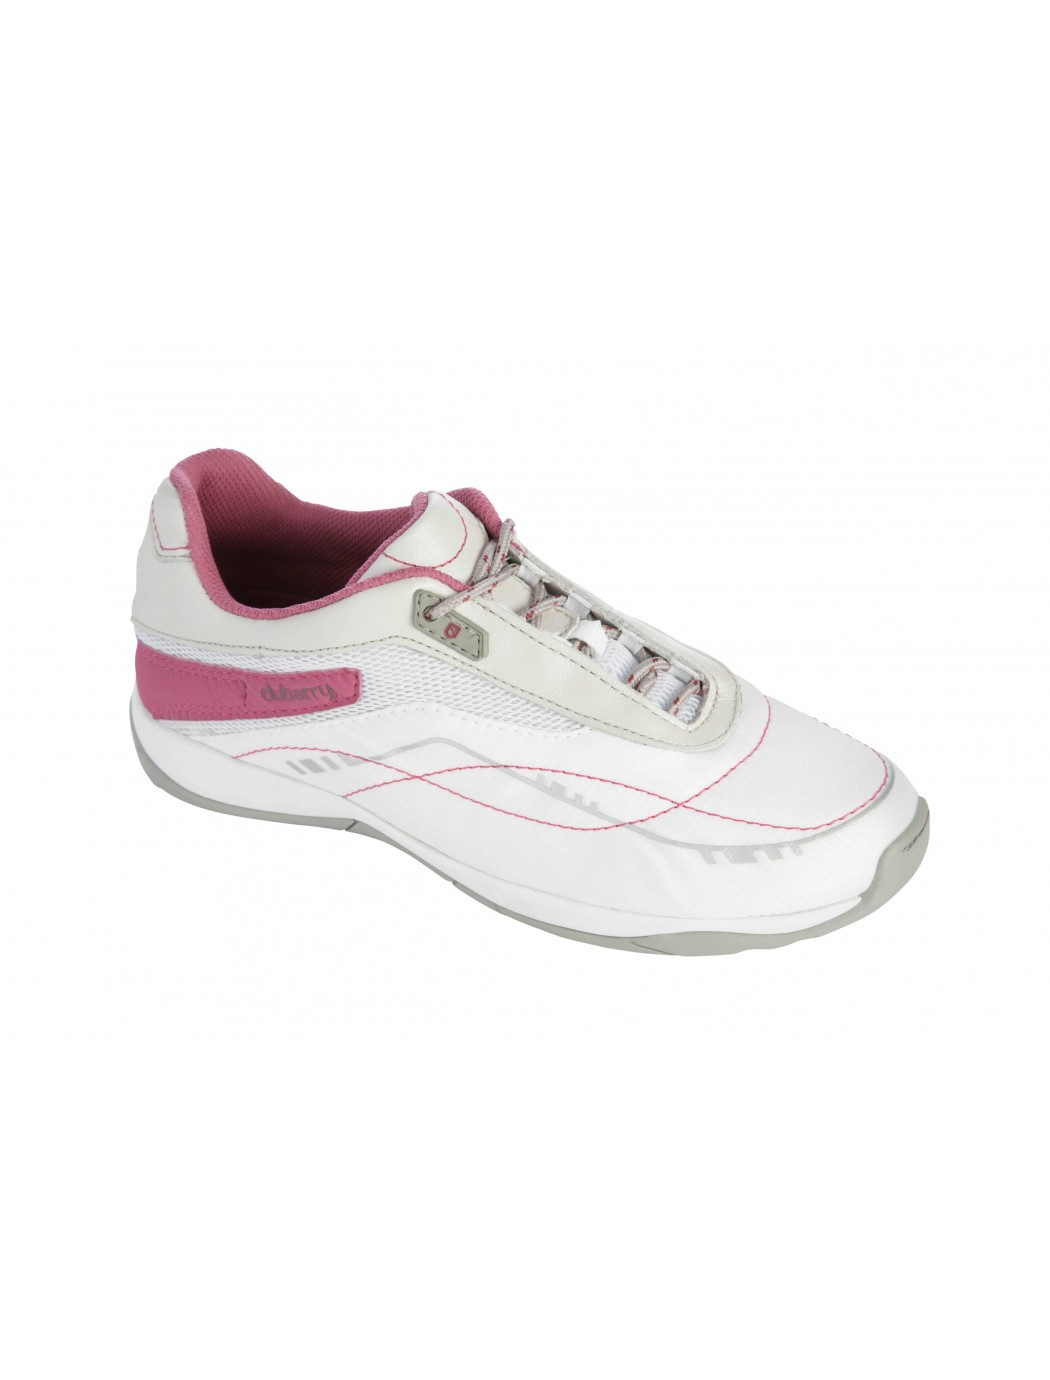 hurricane-deck-shoe-hot-pink-leather-dubarry-1